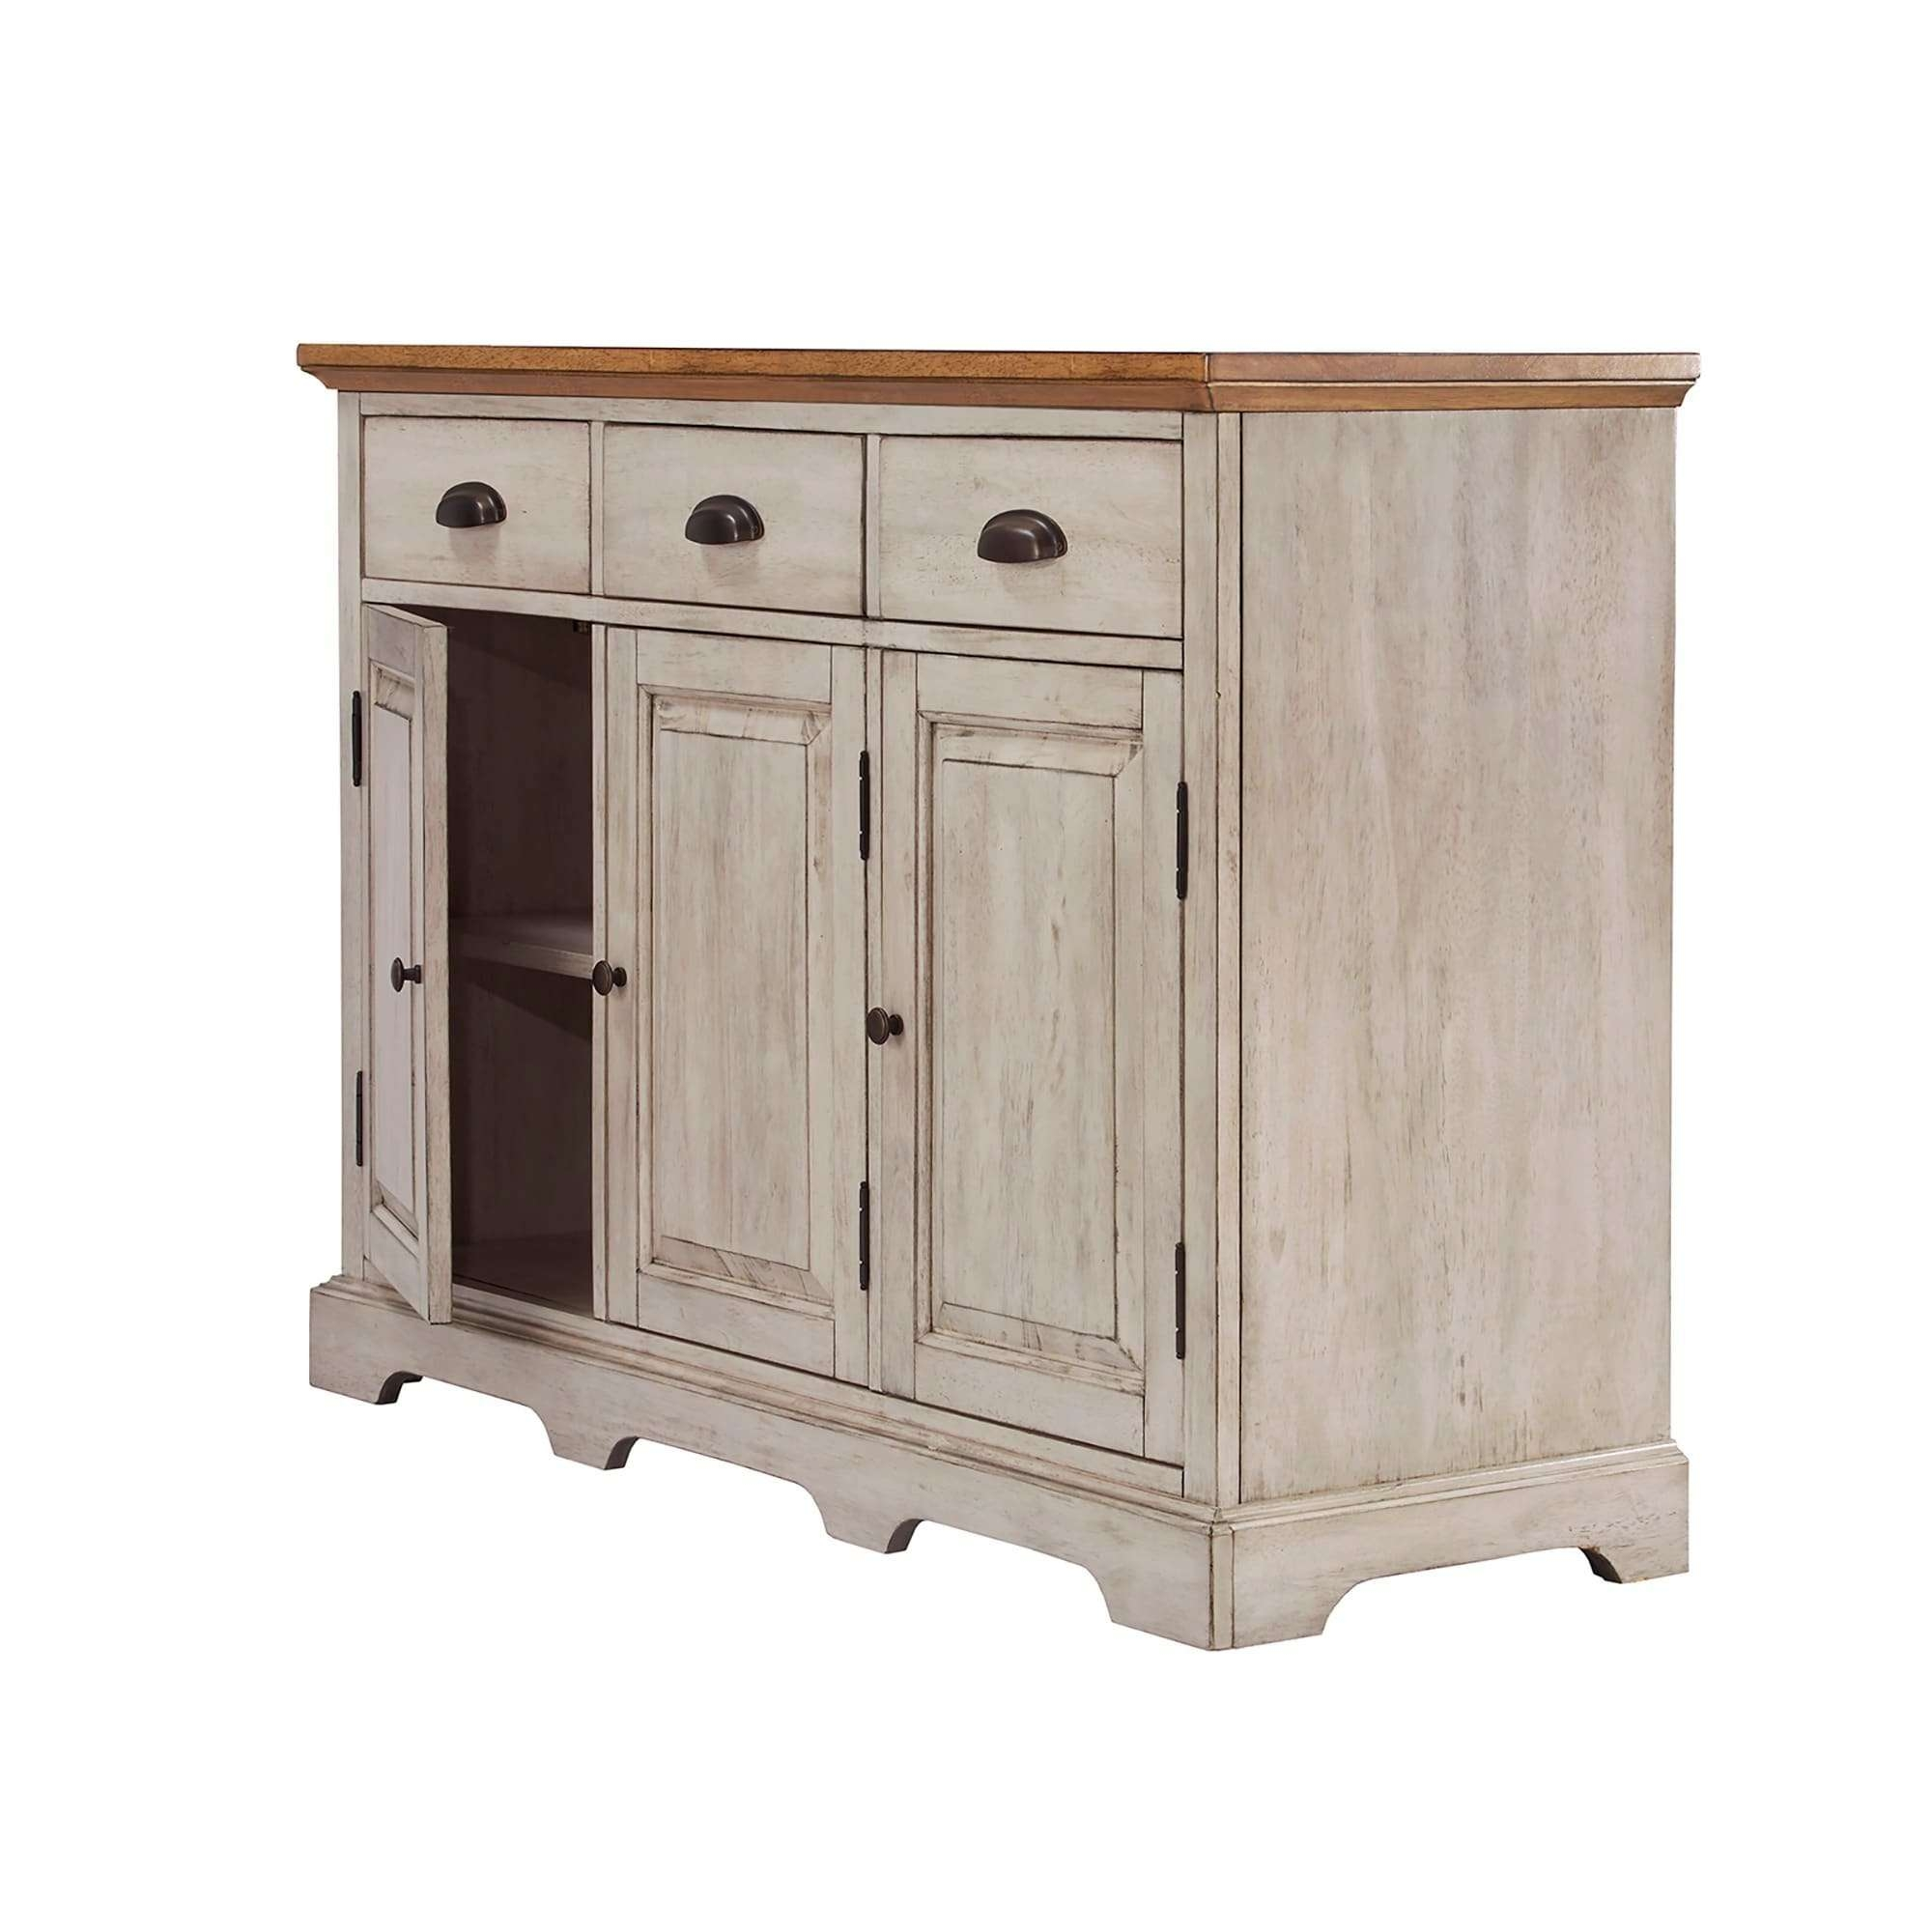 Eleanor Two Tone Wood Cabinet Buffet Serverinspire Q Classic In 50 Inch Sideboards (View 10 of 20)